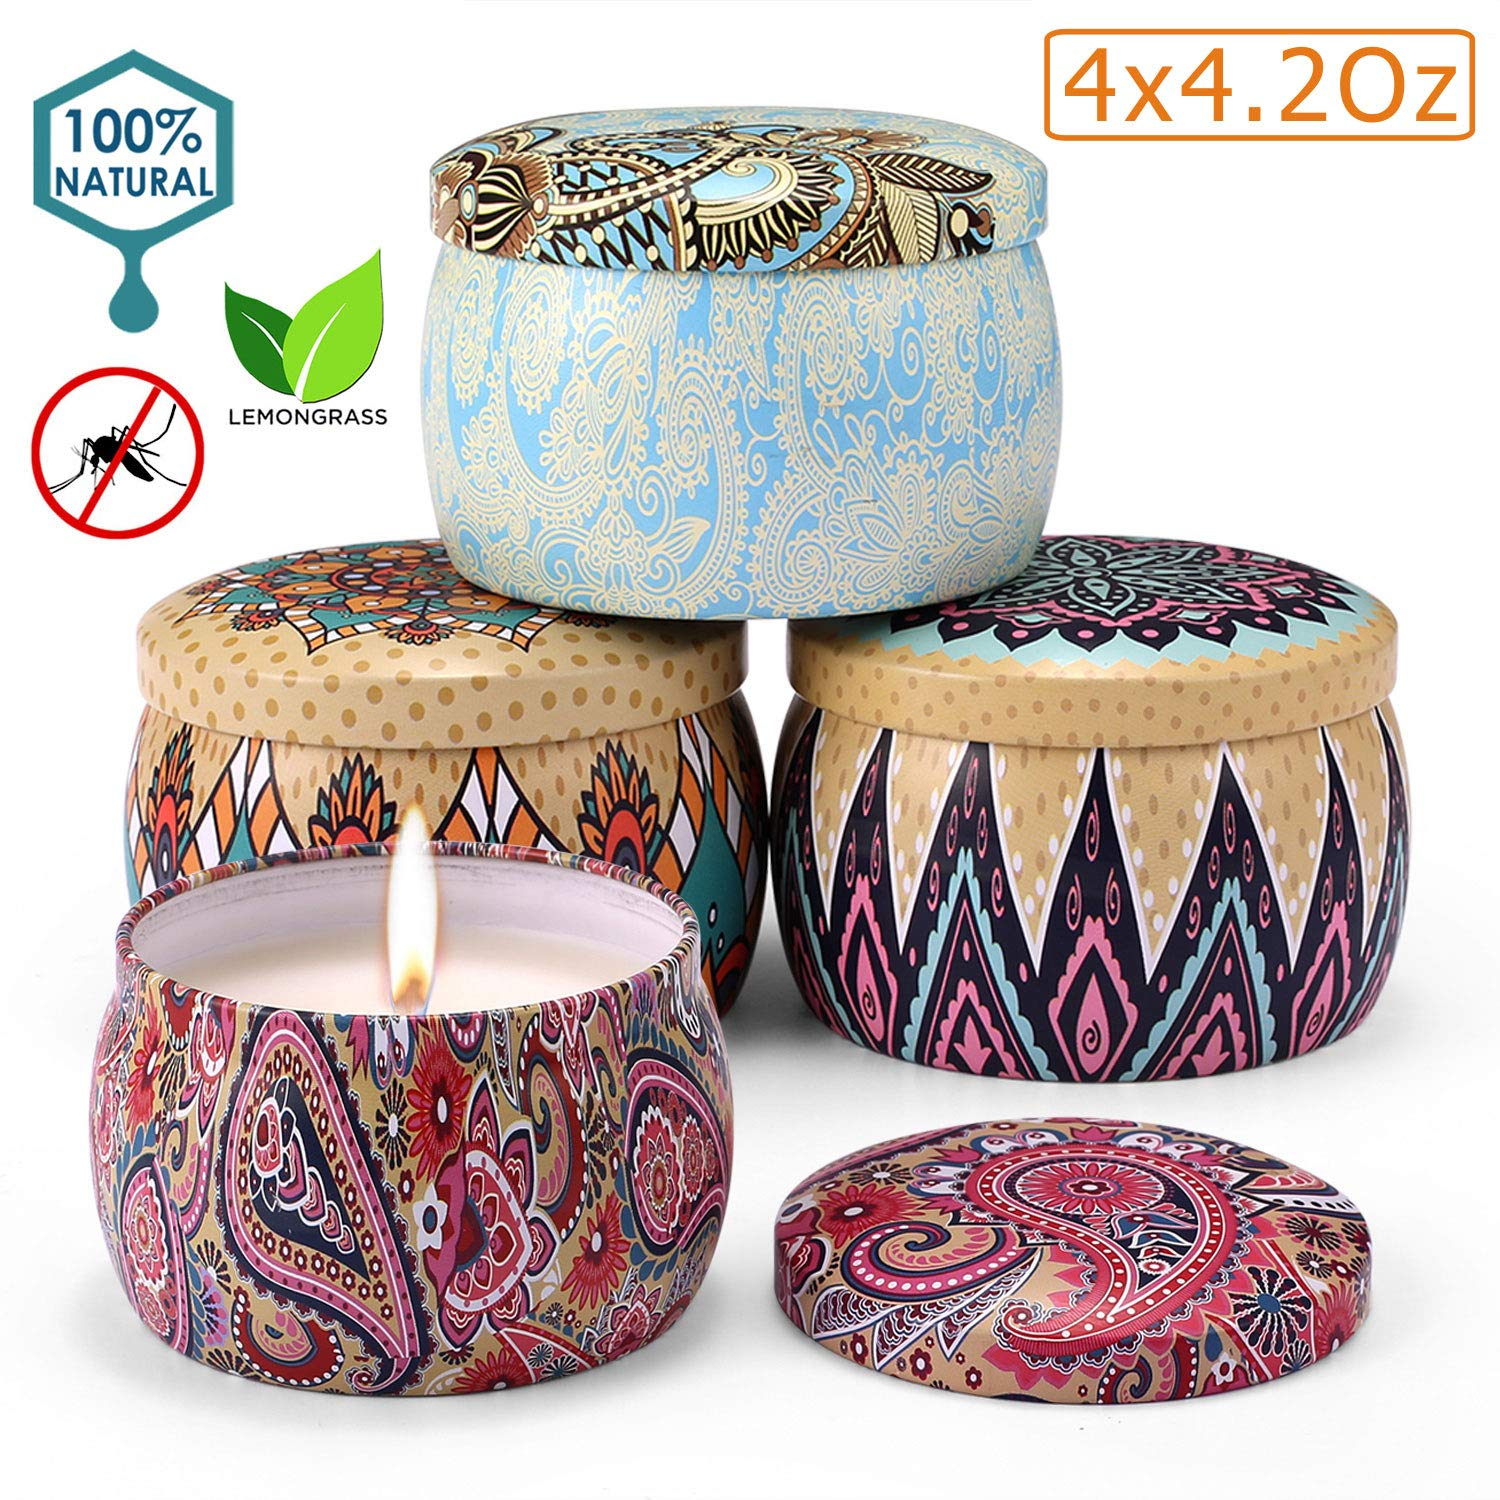 Aromama Citronella Candles Indoor and Outdoor, Scented Natural Soy Wax Portable Travel Tin Candle Gift Set, 4 x 4.2 Oz Pack of 4 by Aromama